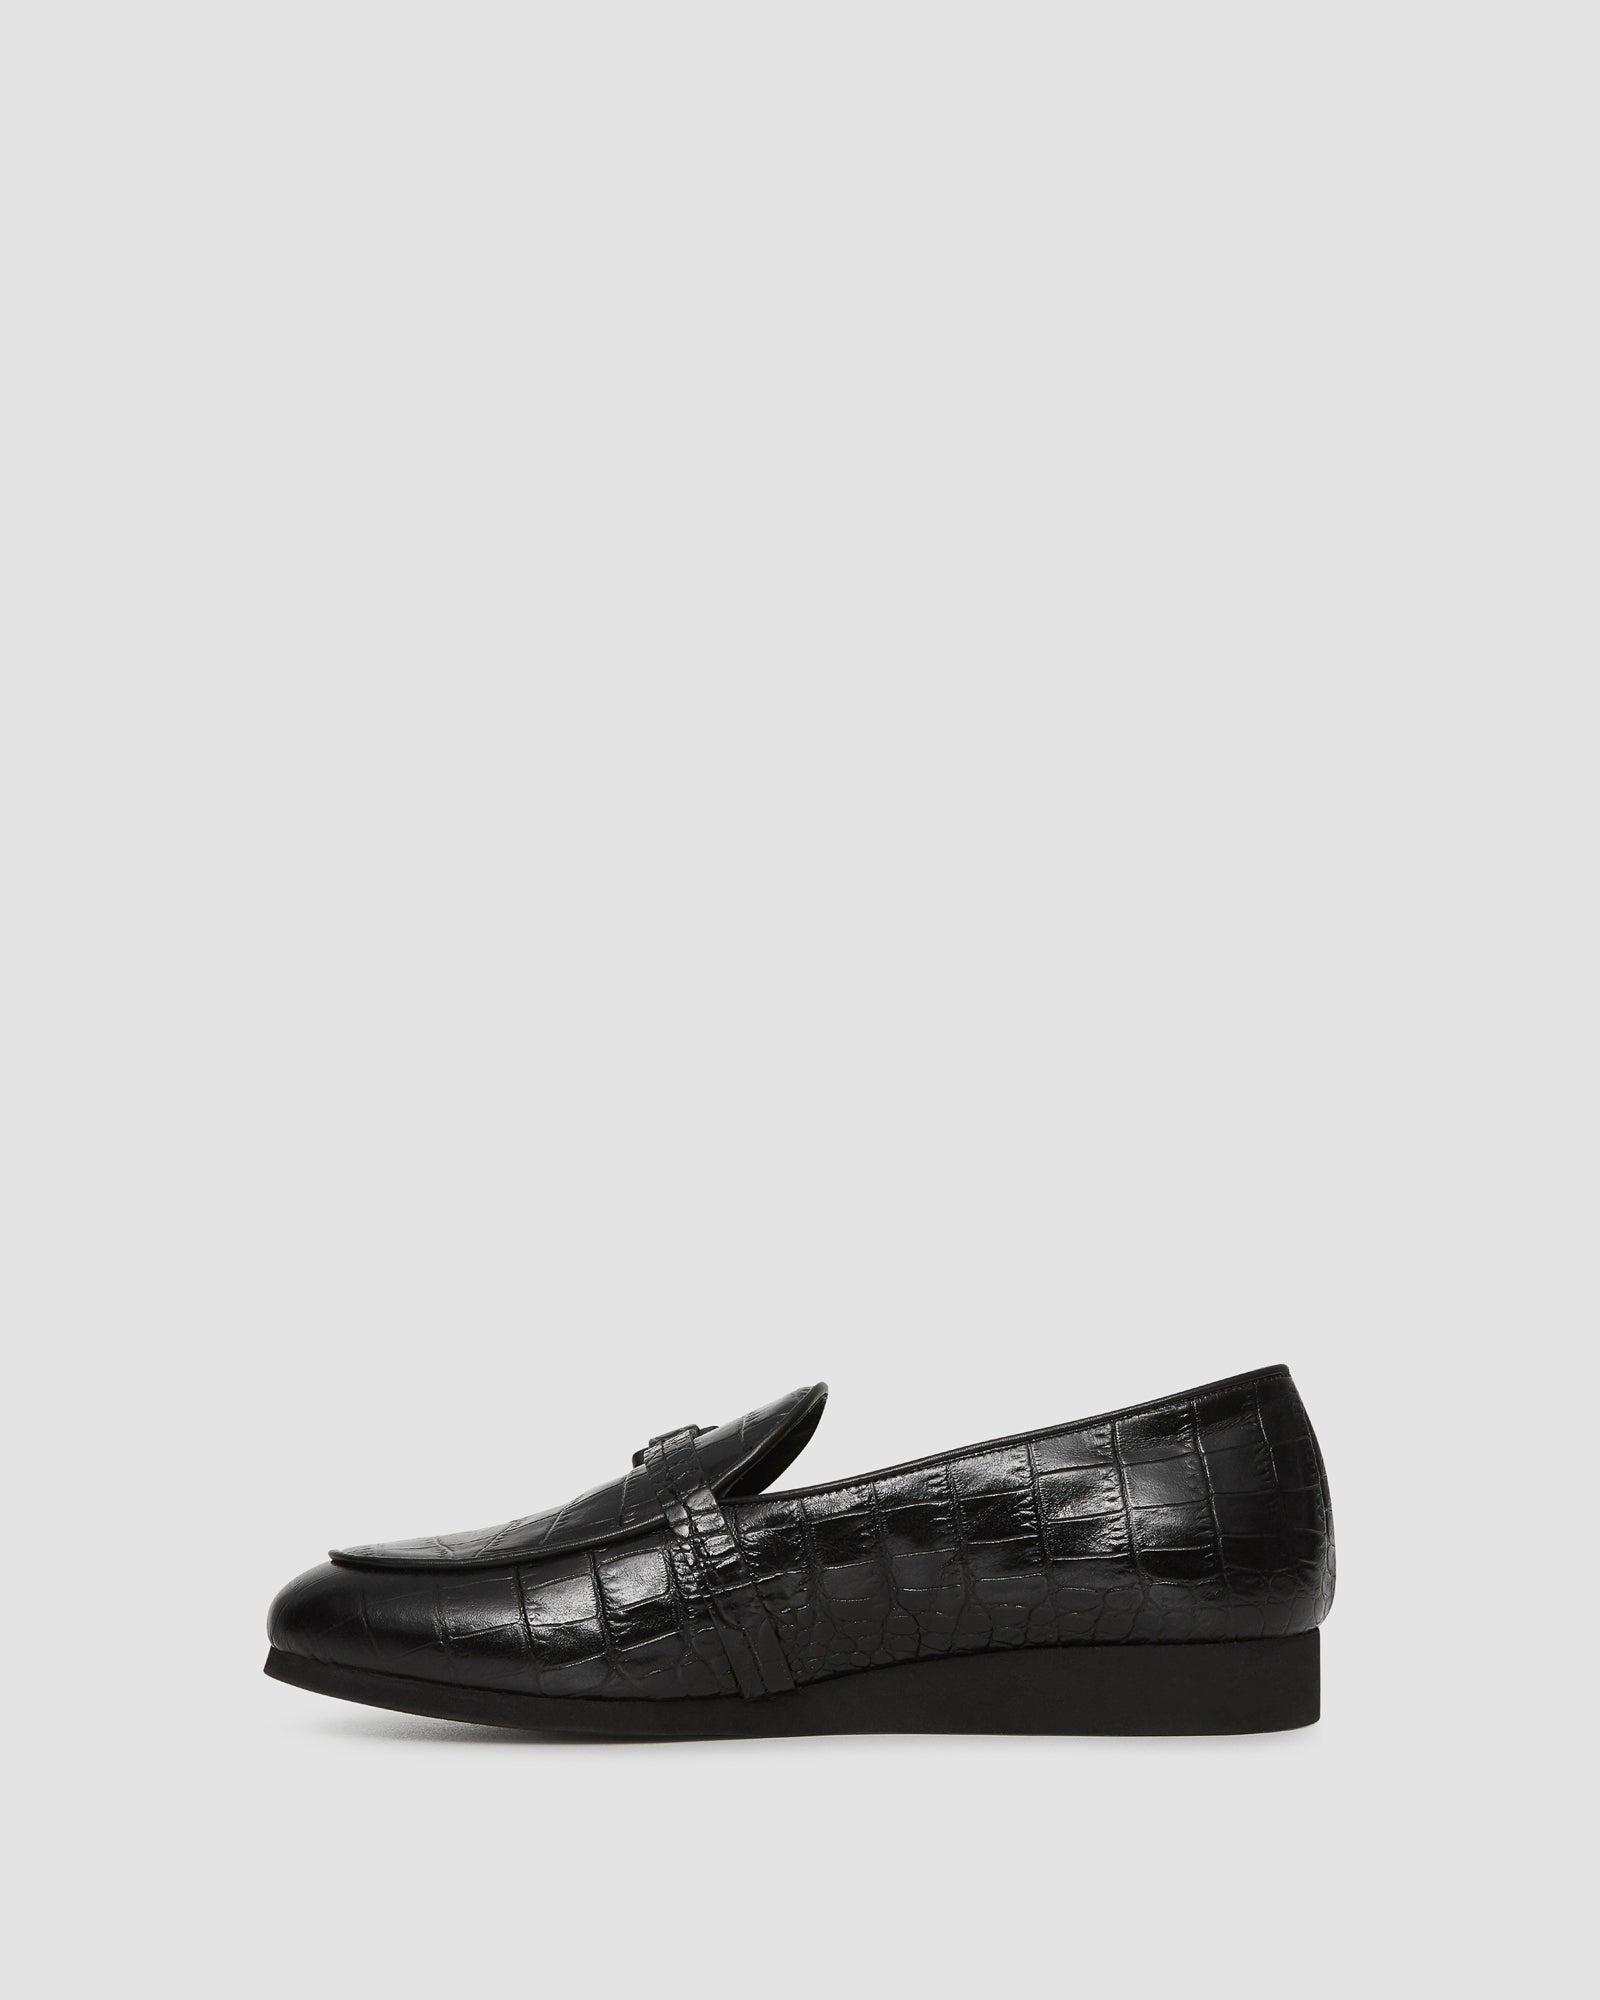 1017 ALYX 9SM | LOAFER SHOES | Shoe | BLACK, Google Shopping, LOAFERS, Man, S20, Shoes, SS20, UNISEX, Woman